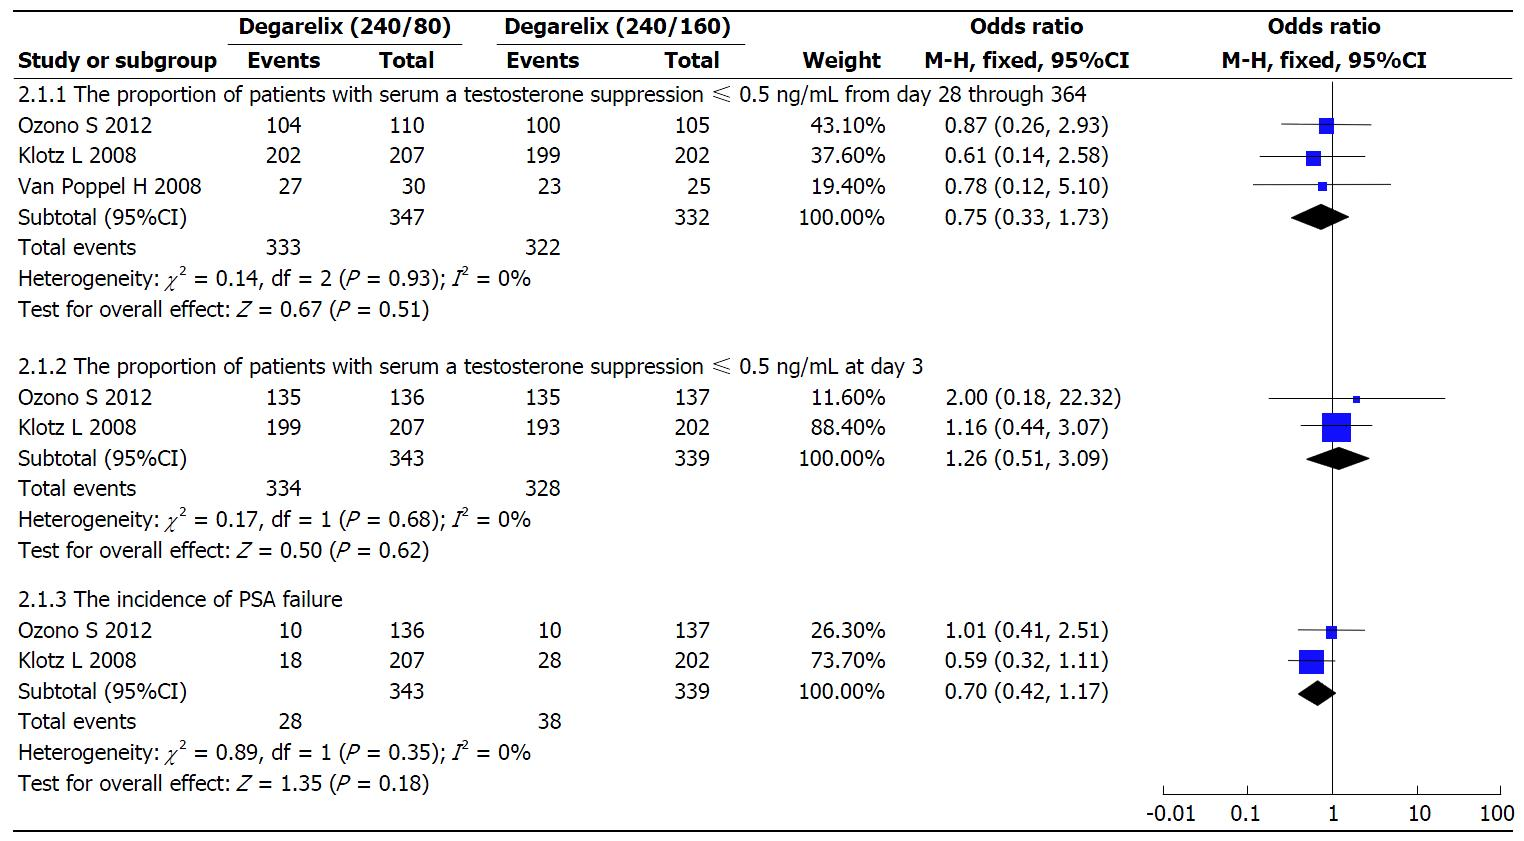 Efficacy, safety, and dose comparison of degarelix for the treatment